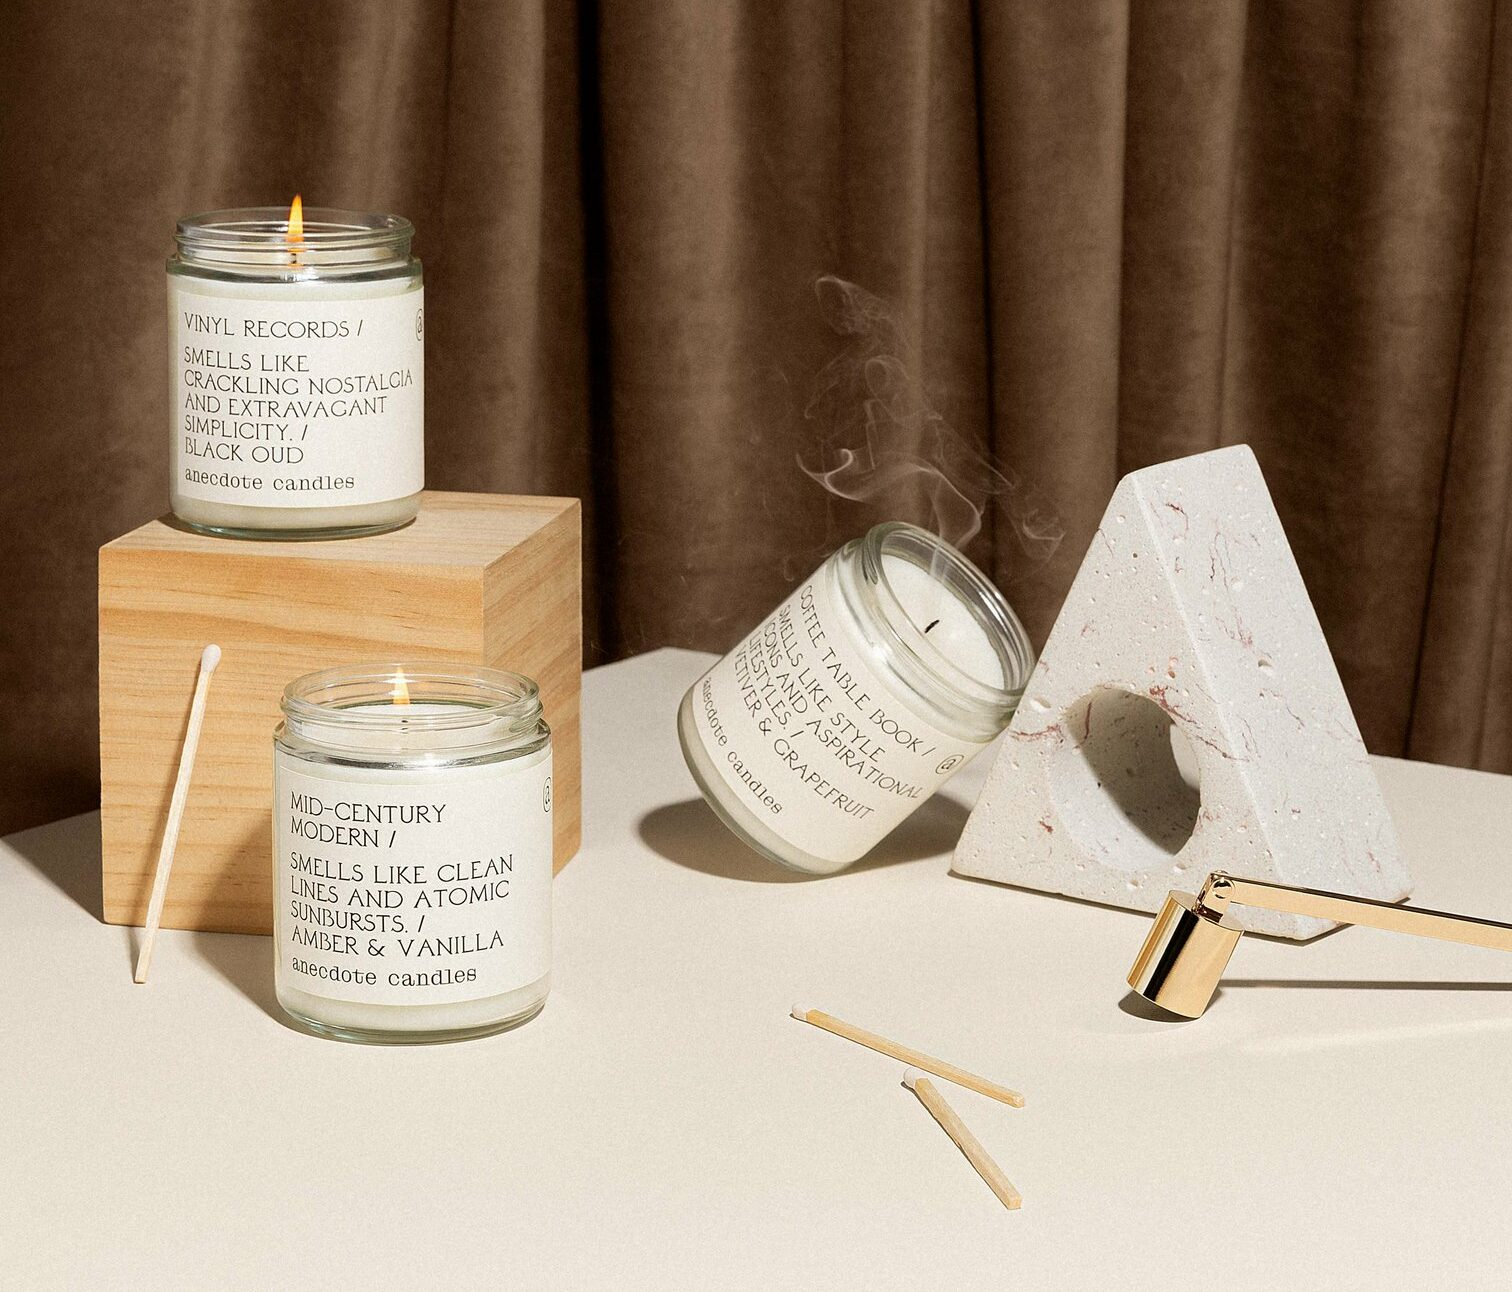 anecdote candles in glass jars